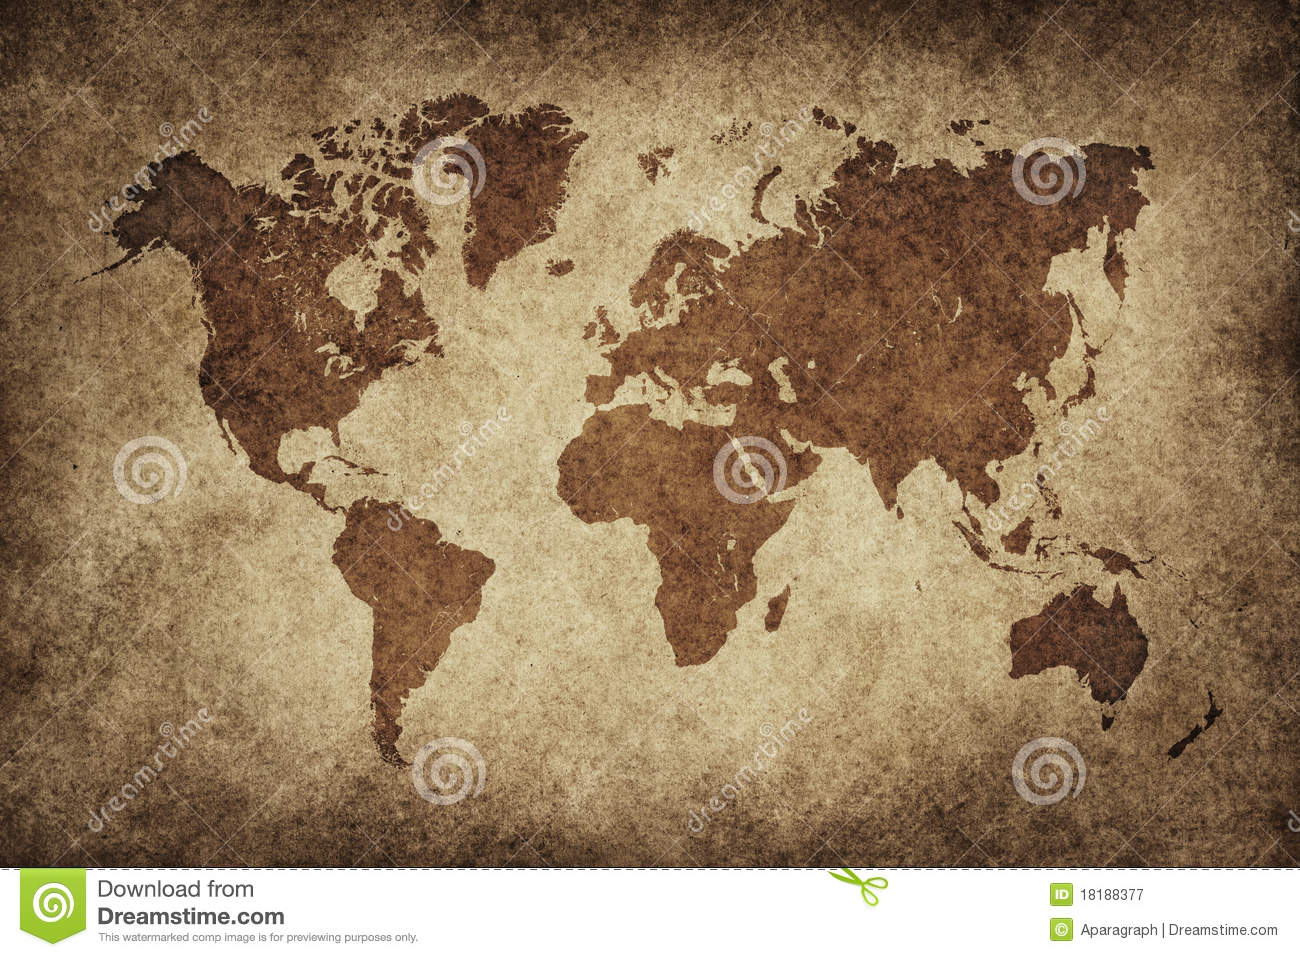 World map in vintage background stock illustration illustration of download world map in vintage background stock illustration illustration of abstract north 18188377 gumiabroncs Gallery